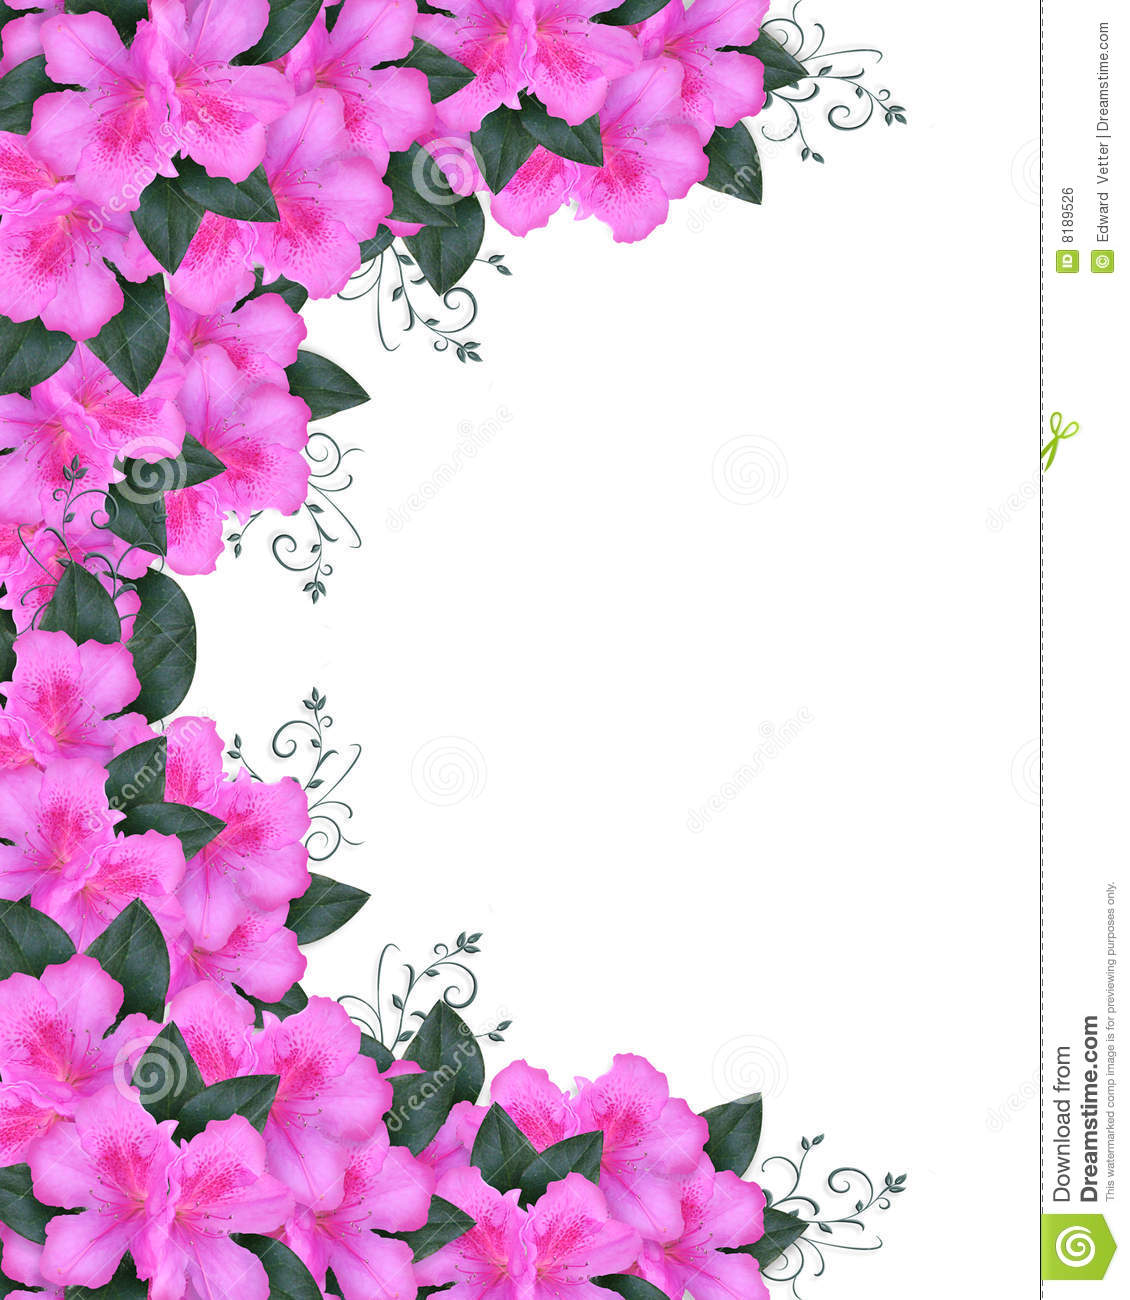 Invitation Border Pink Azaleas Stock Illustration Illustration Of - Free mother's day card templates